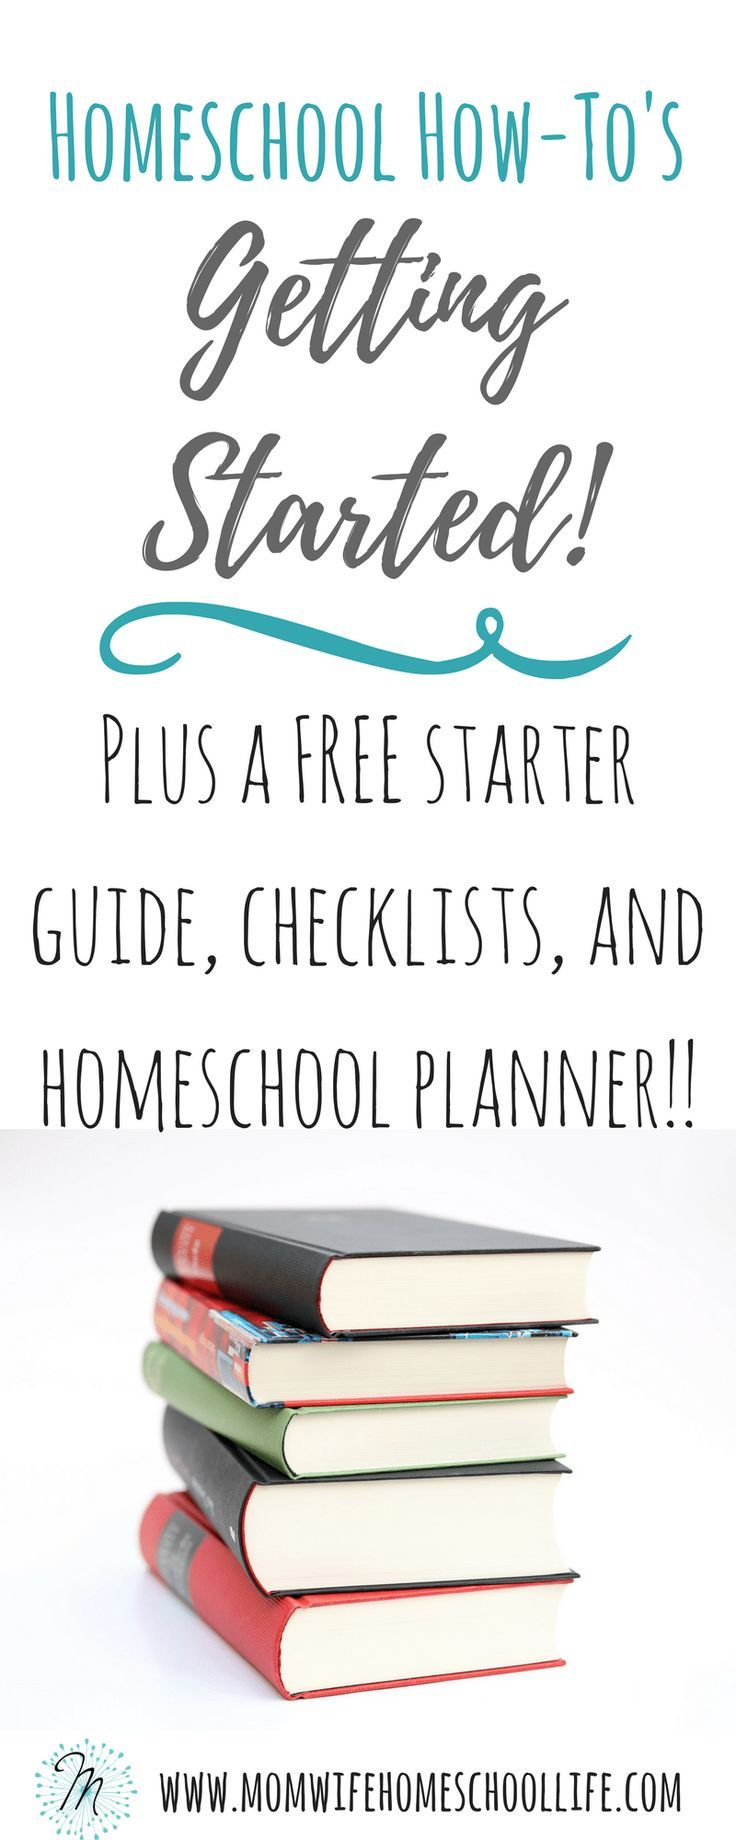 How To Start Homeschooling A Complete StepbyStep Guide